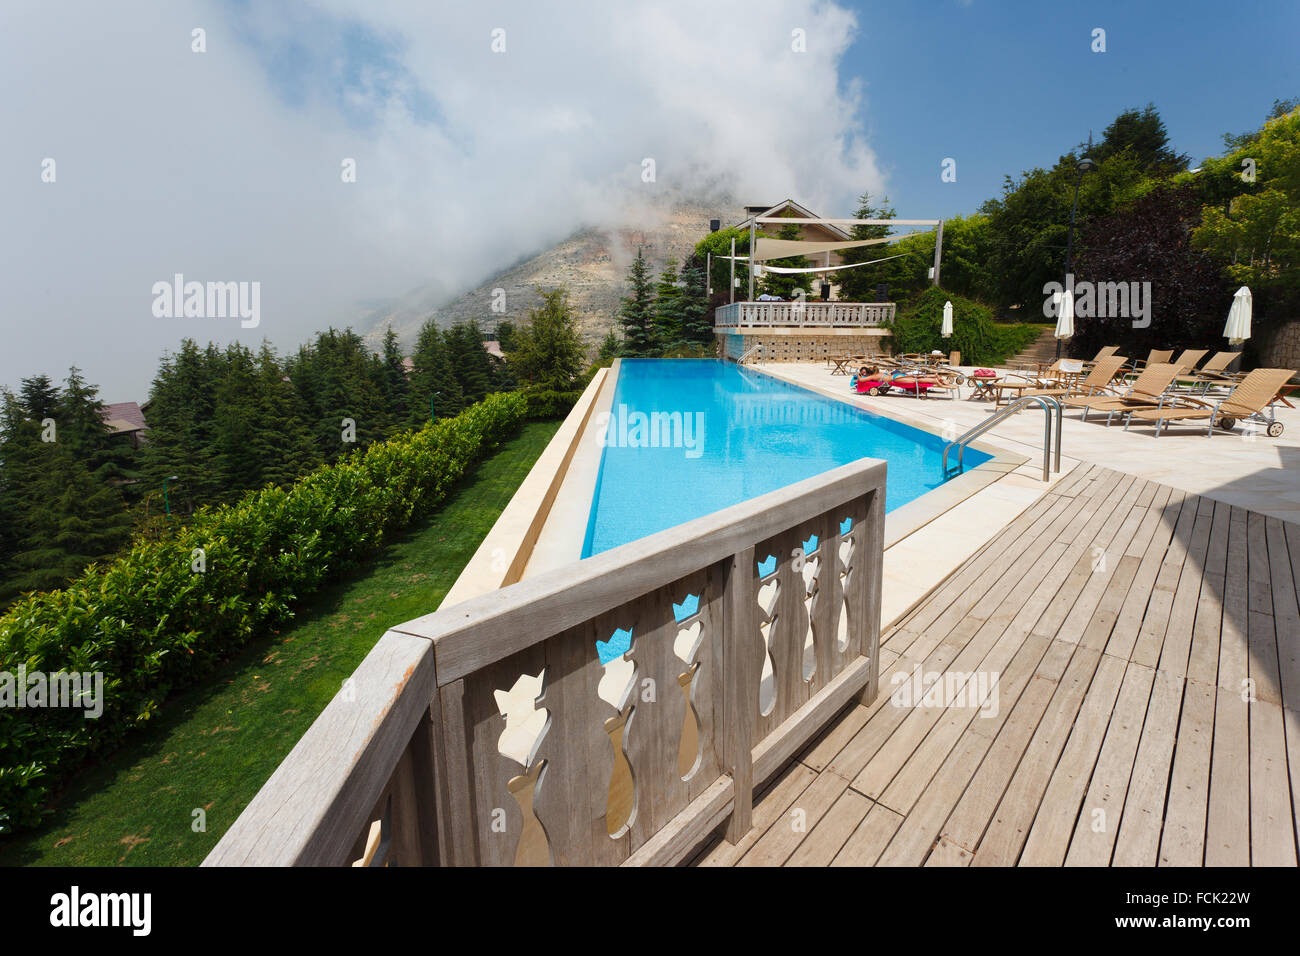 hotel swimming pool in faraya lebanon stock photo royalty free image 93846449 alamy